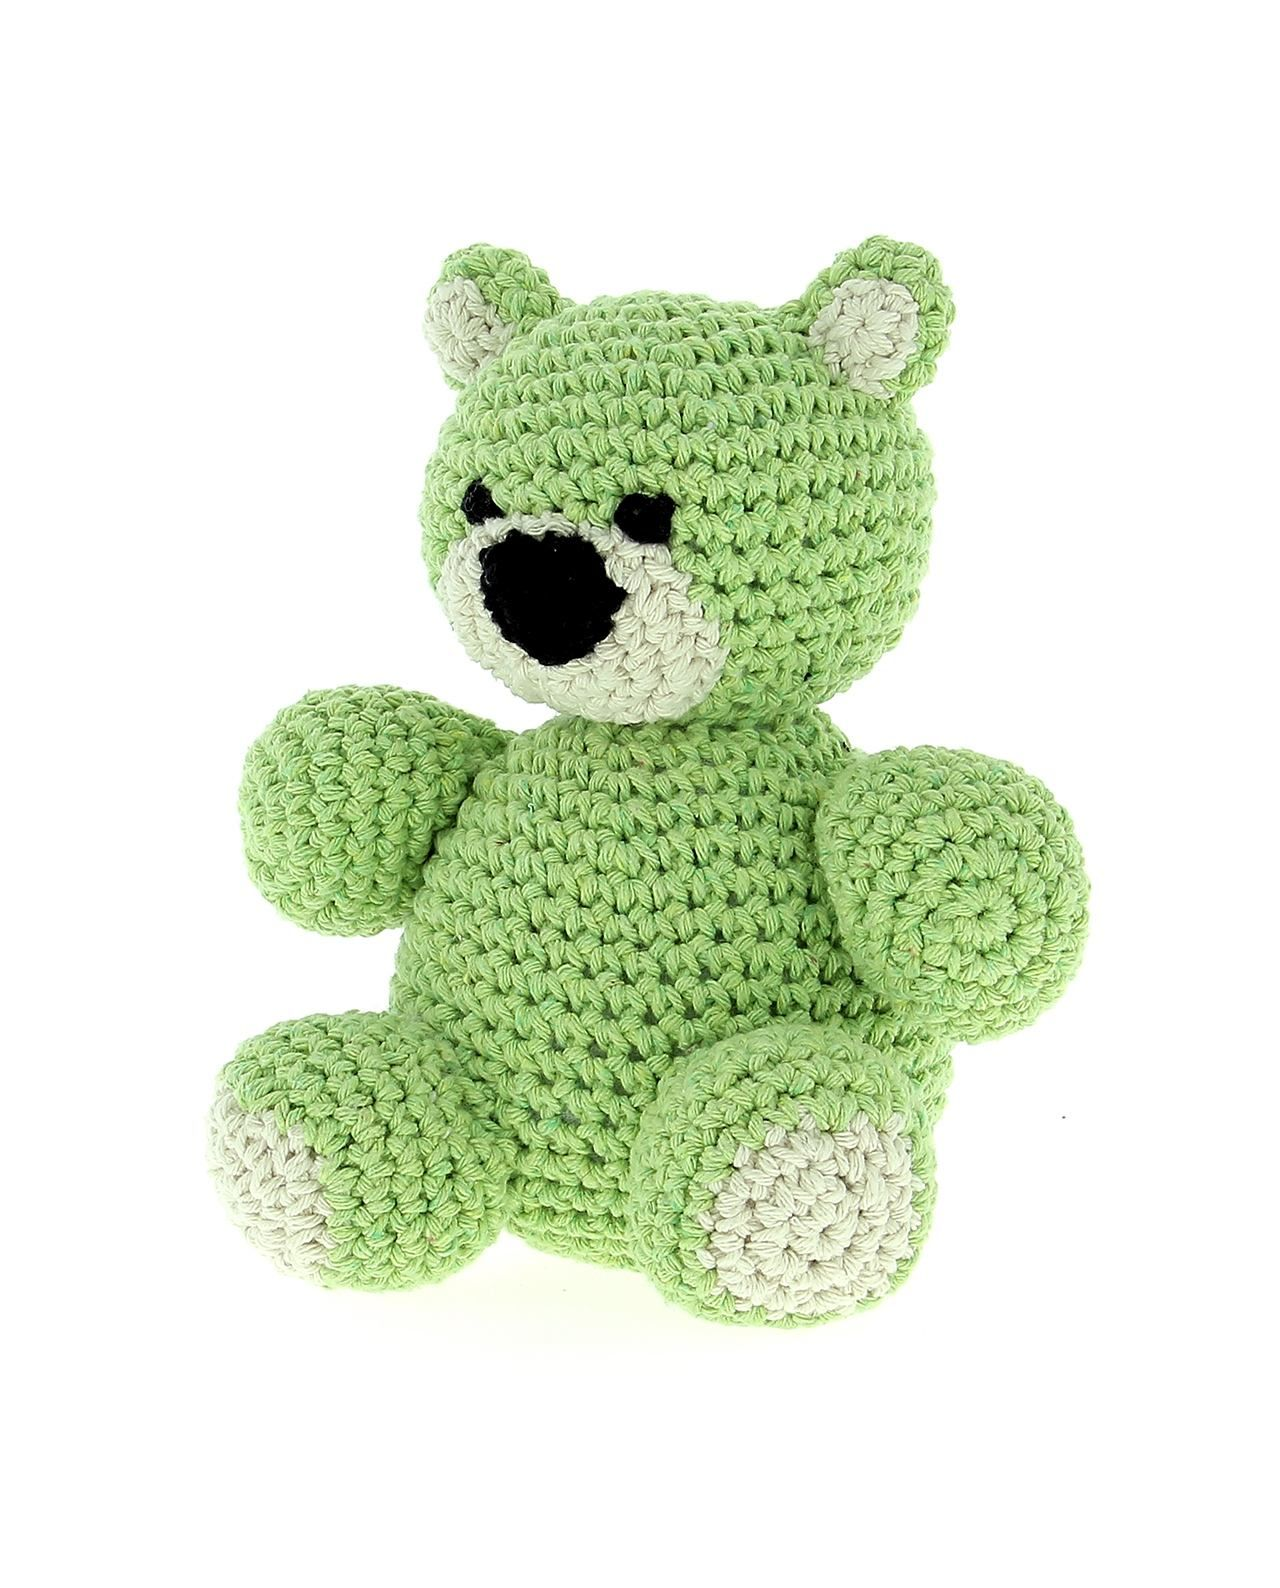 Go Handmade Teddy Bear Small Crochet Kit - Yarnplaza.com | 1588x1280